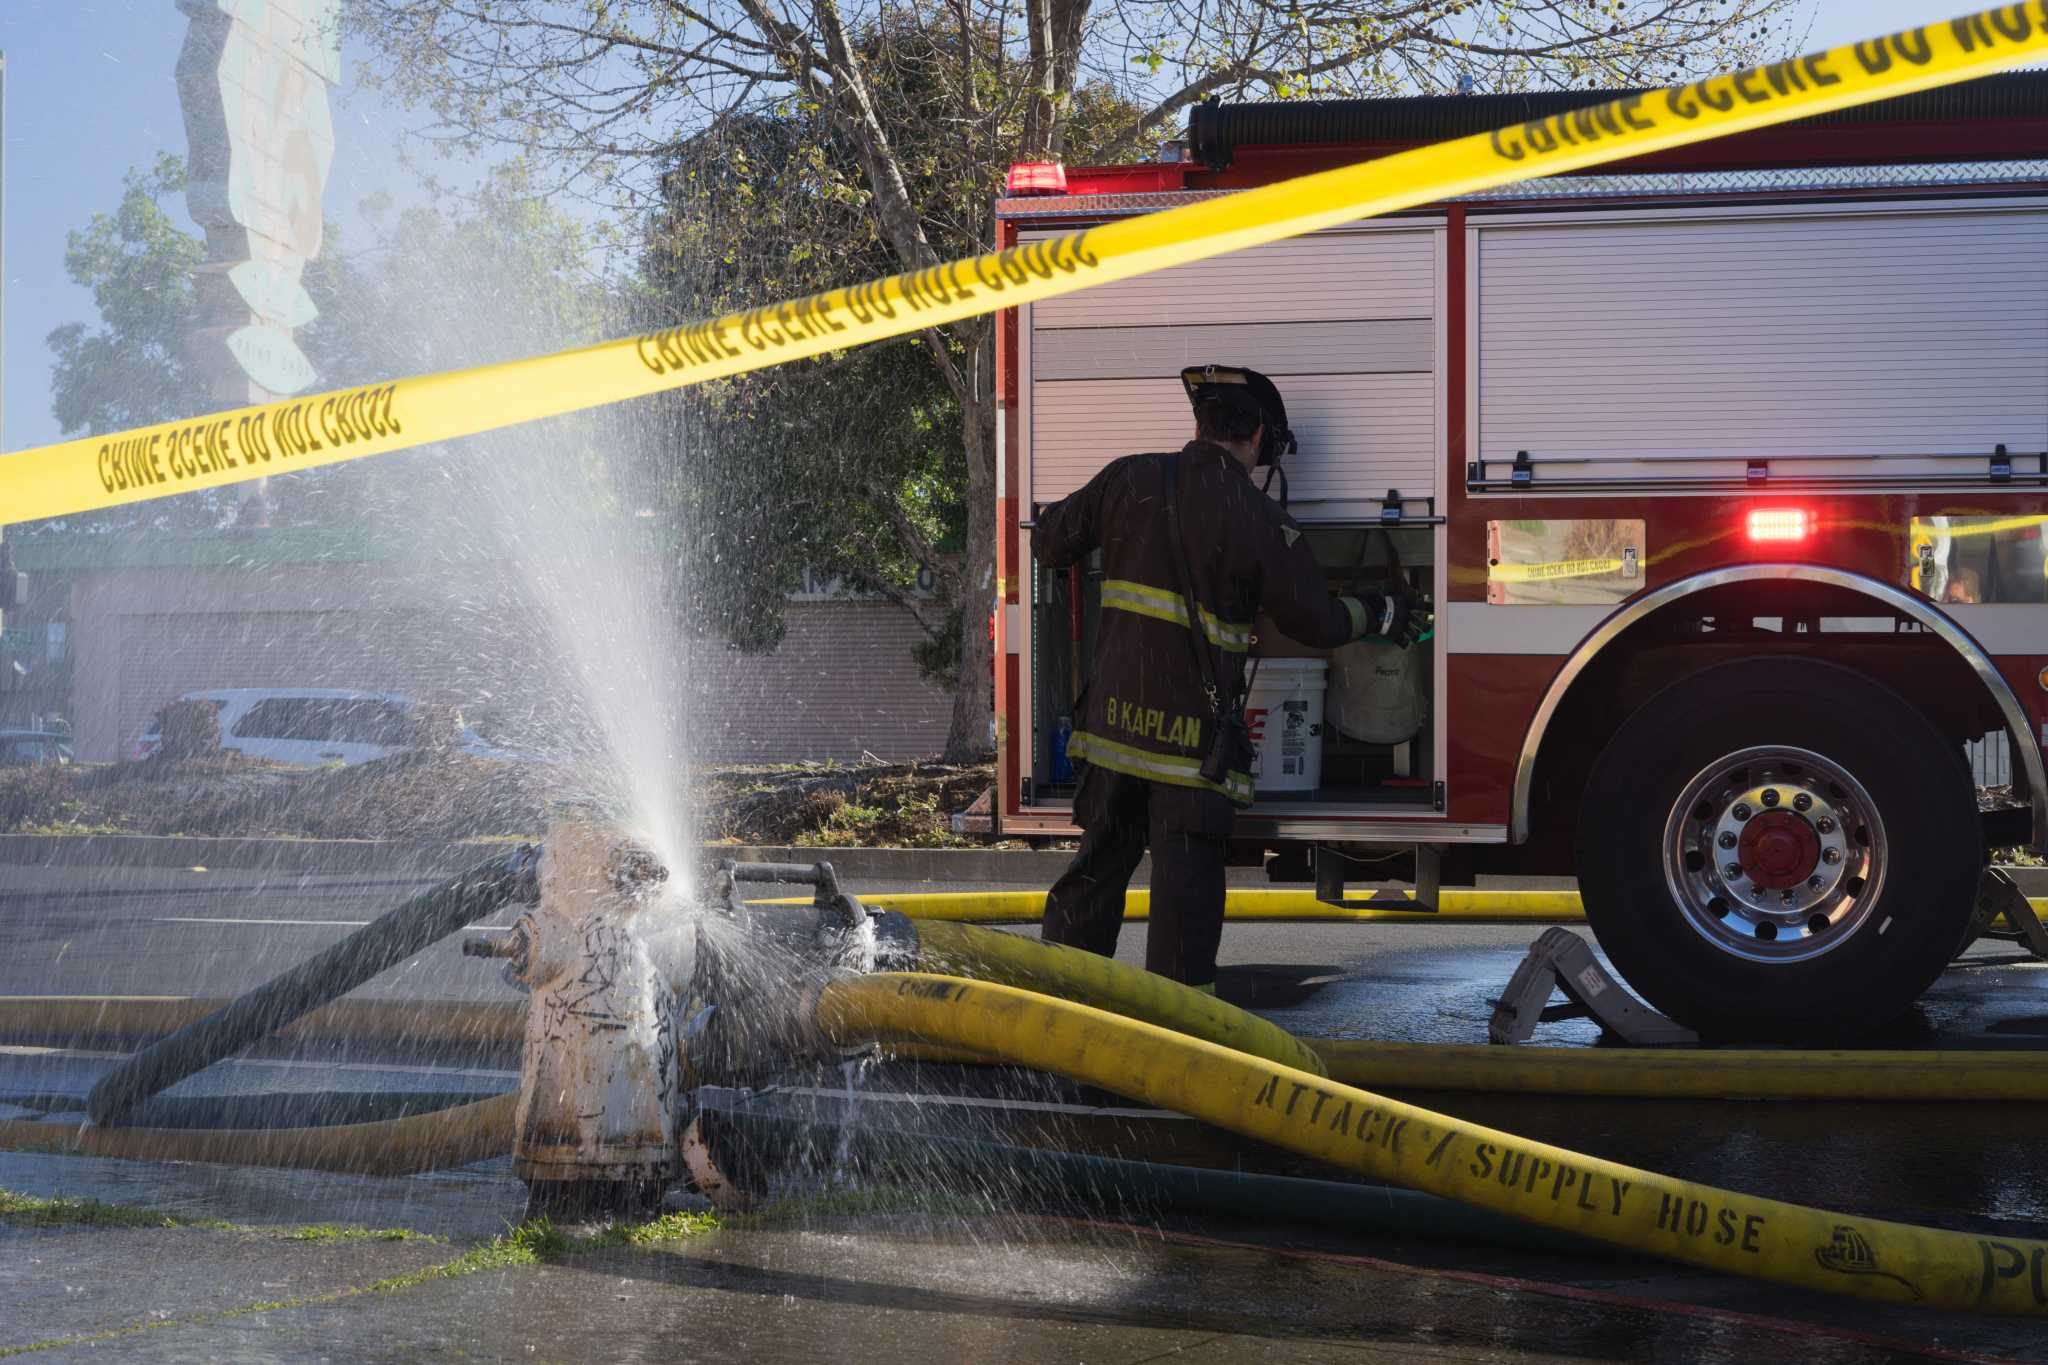 A firefighter works on the scene of an apartment fire in West Oakland on San Pablo and Mead Ave. on Monday, March 27, 2017 (Sarahbeth Maney/Xpress).